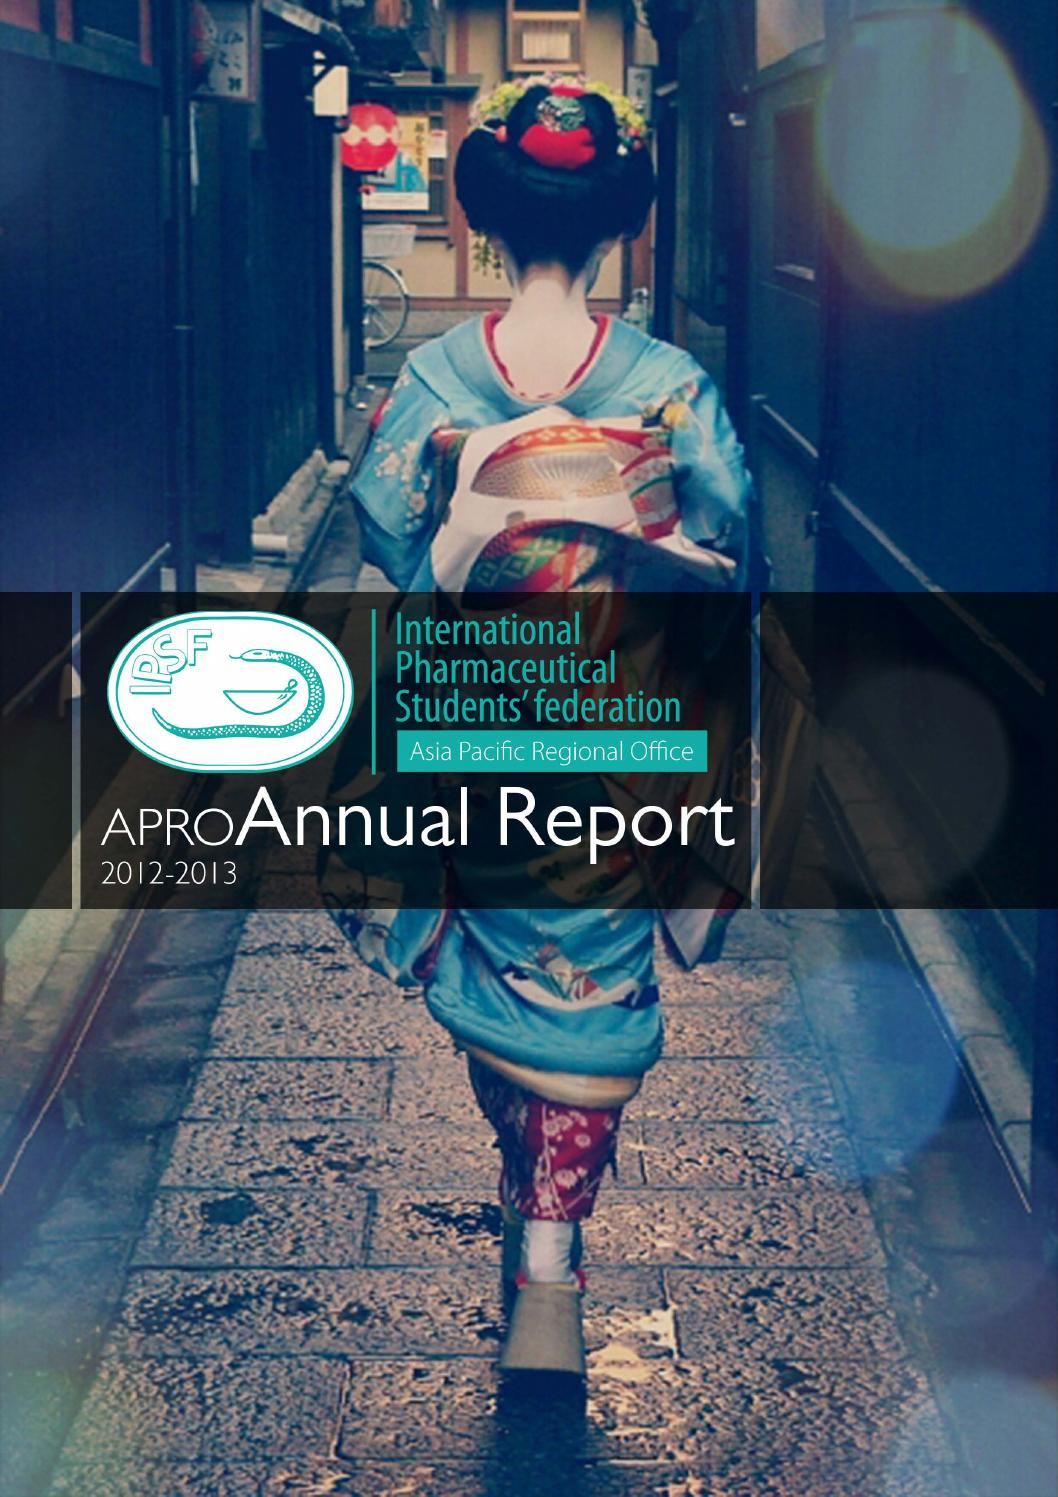 Ipsf Apro Annual Report 2012 2013 By Ipsf Apro Issuu